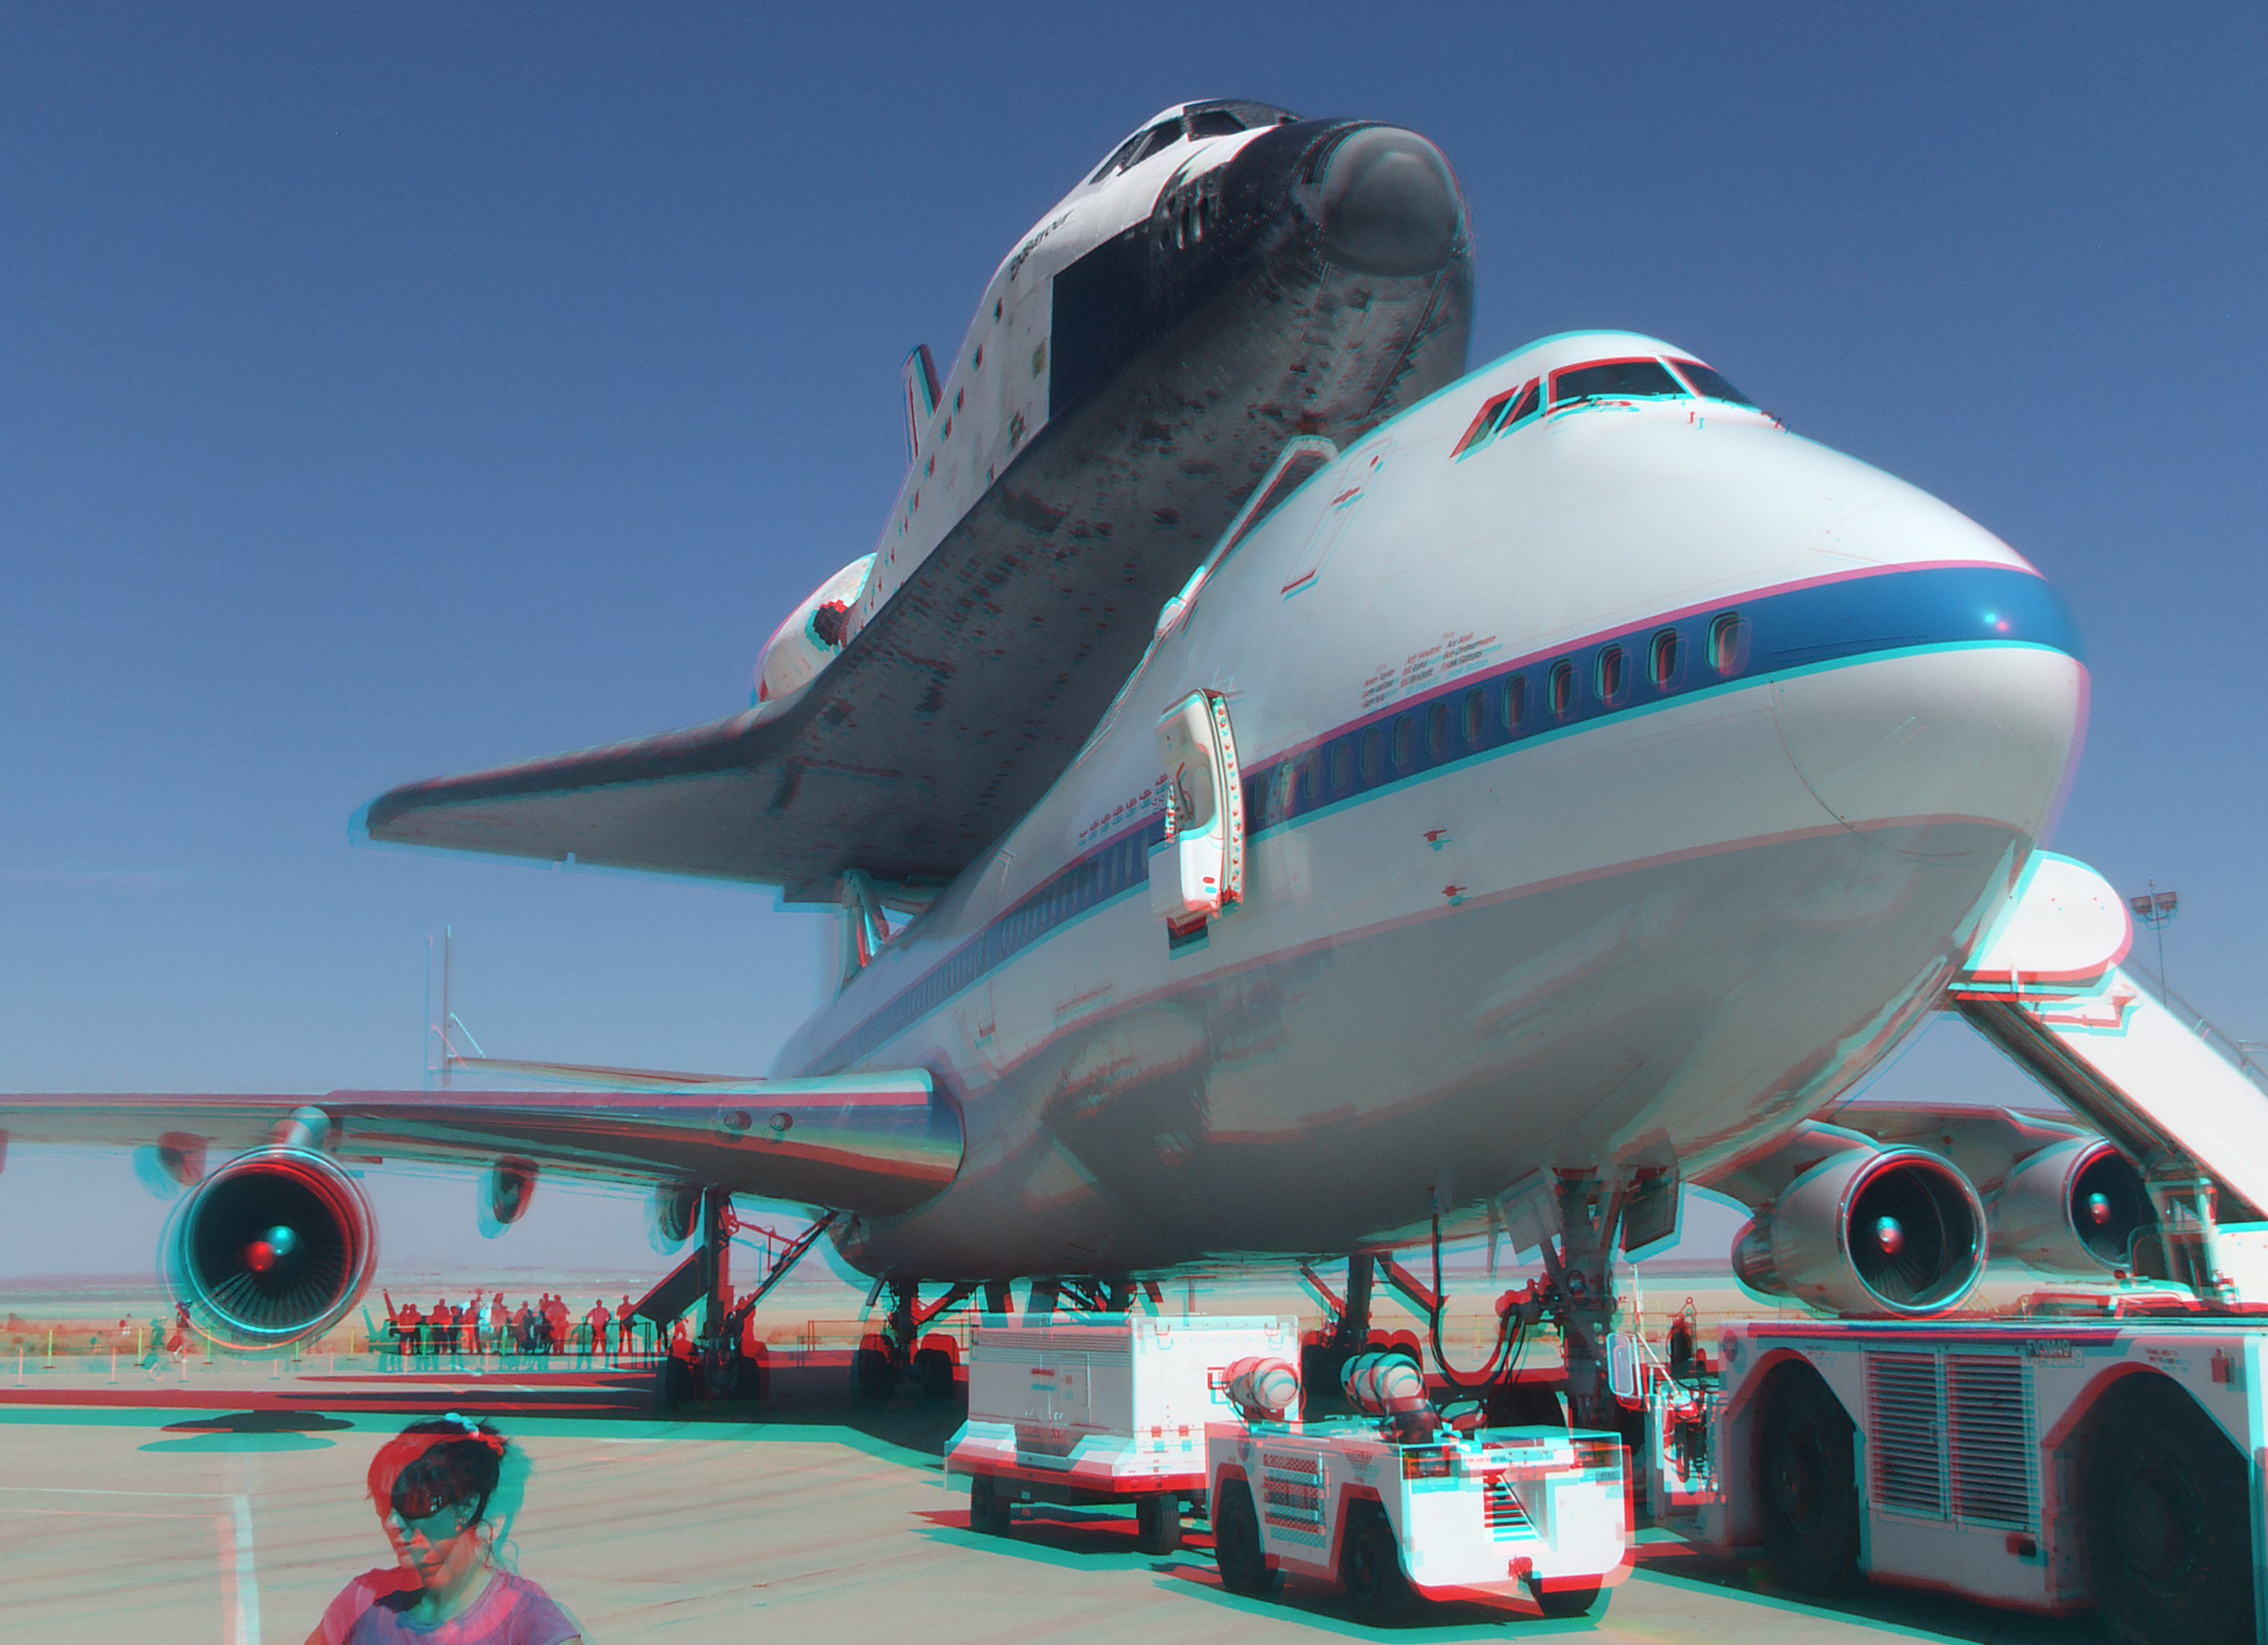 3D Anaglyph of Space Shuttle Endeavour at Edwards Air